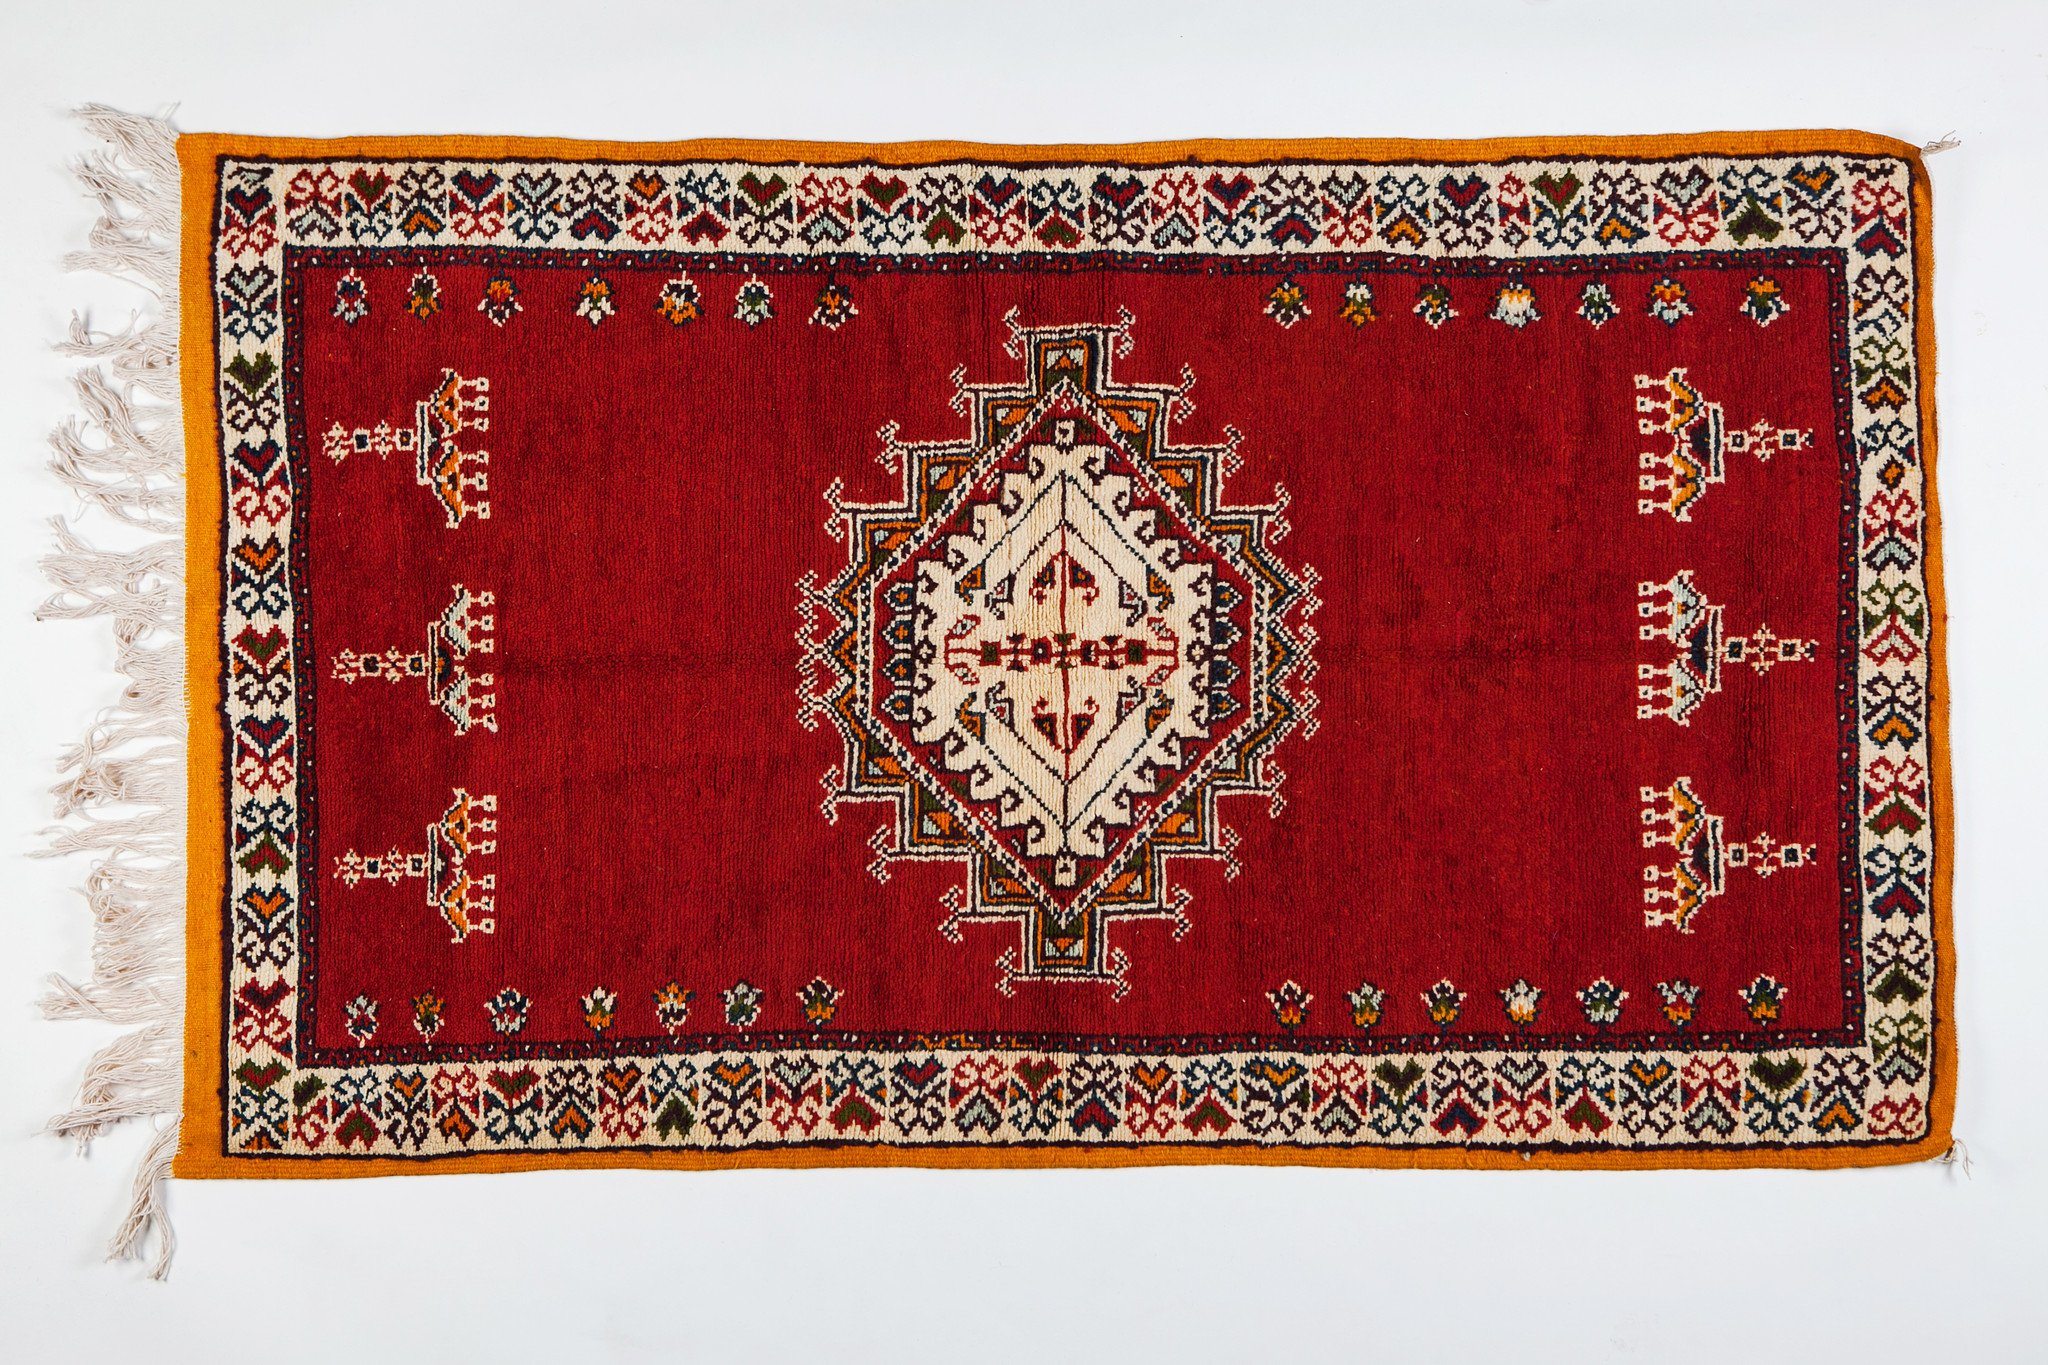 Berber Medium Rug - Handwoven Wool with Abstract and Geometric Elements